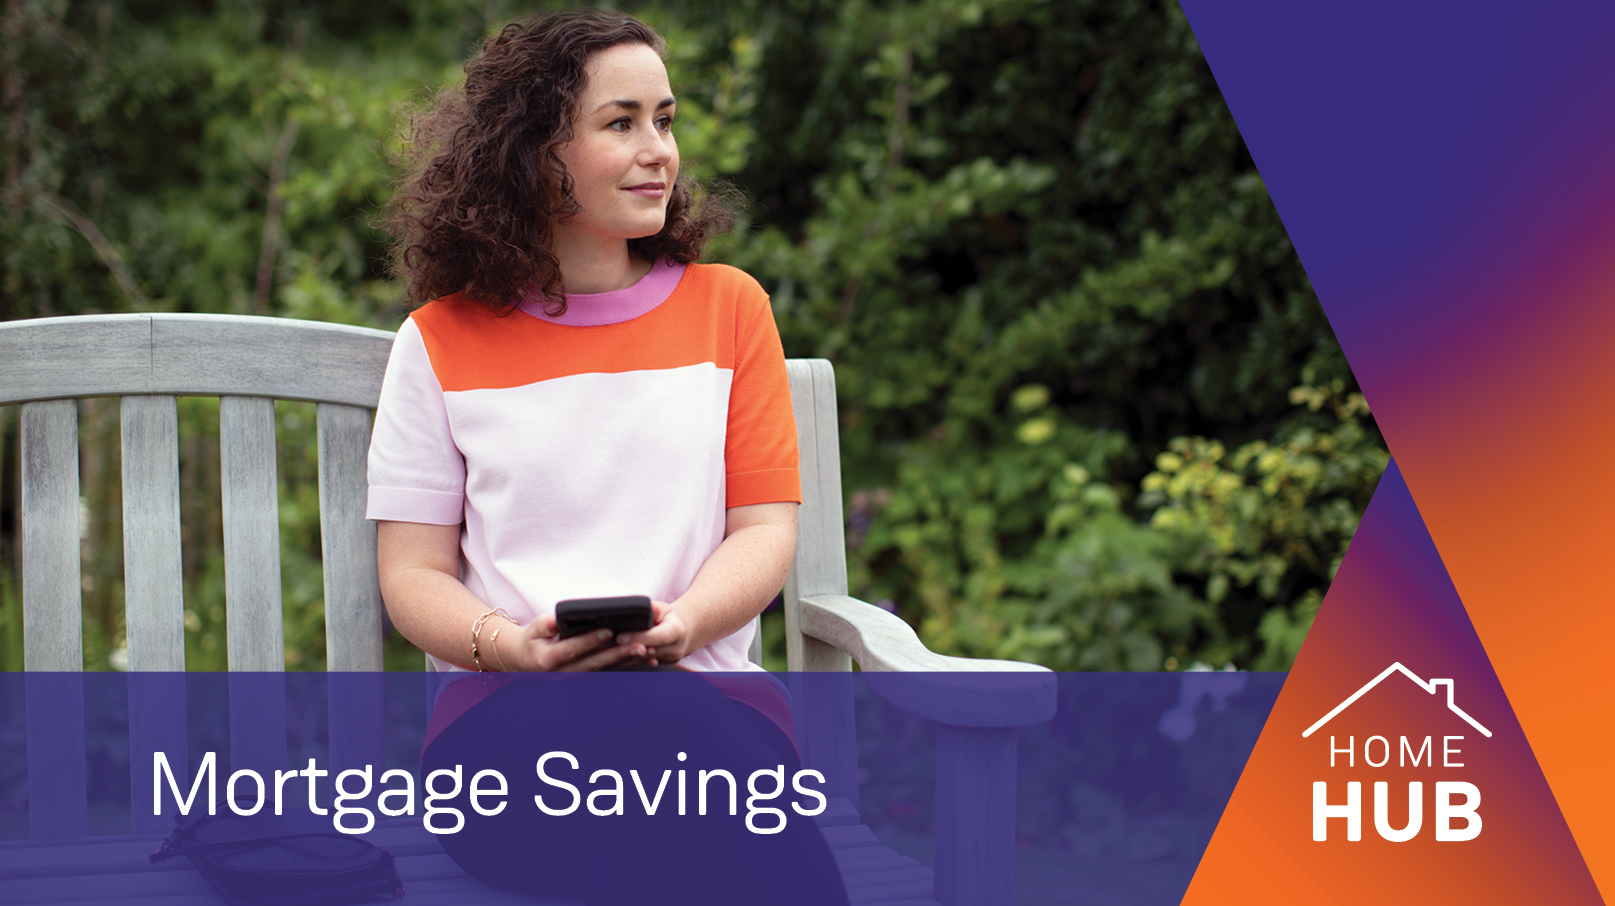 Mortgage Savings: Our top tips on saving for your dream home